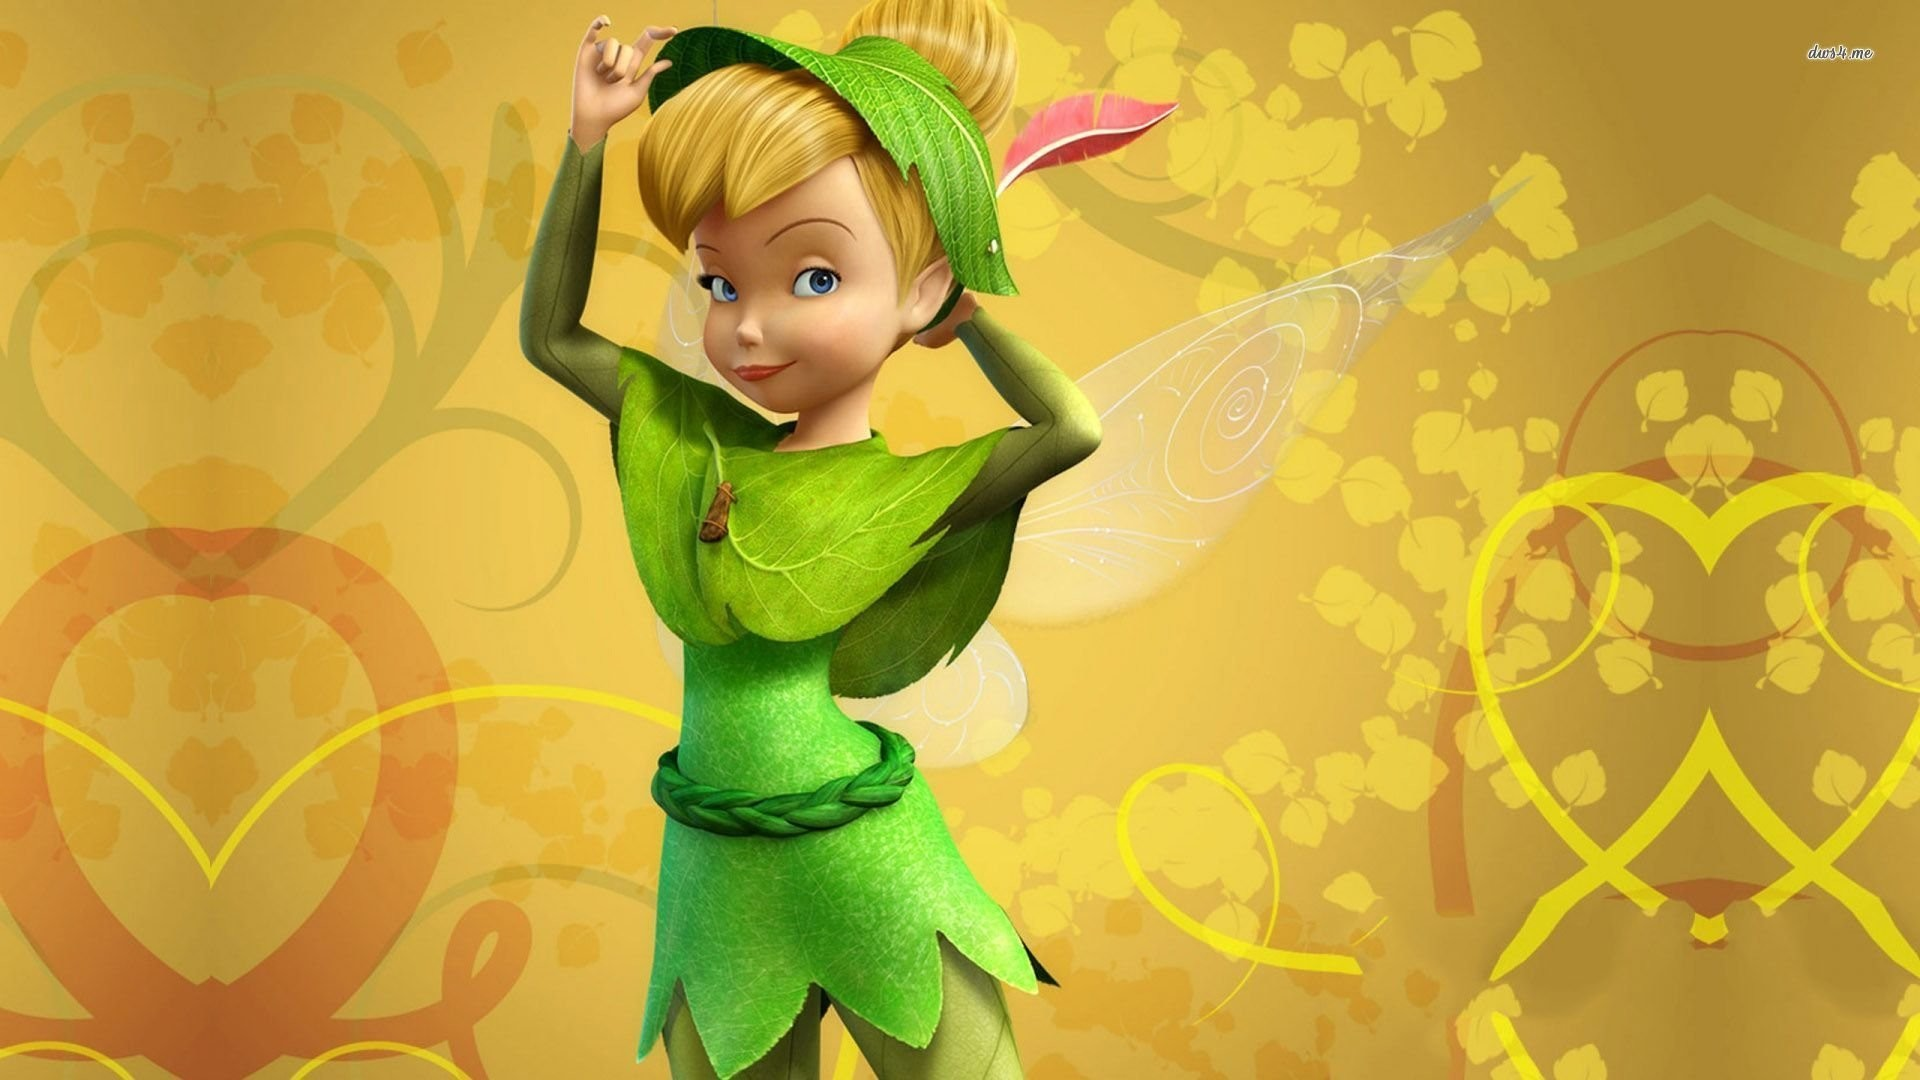 Res: 1920x1080, Movie - Tinker Bell Wallpaper